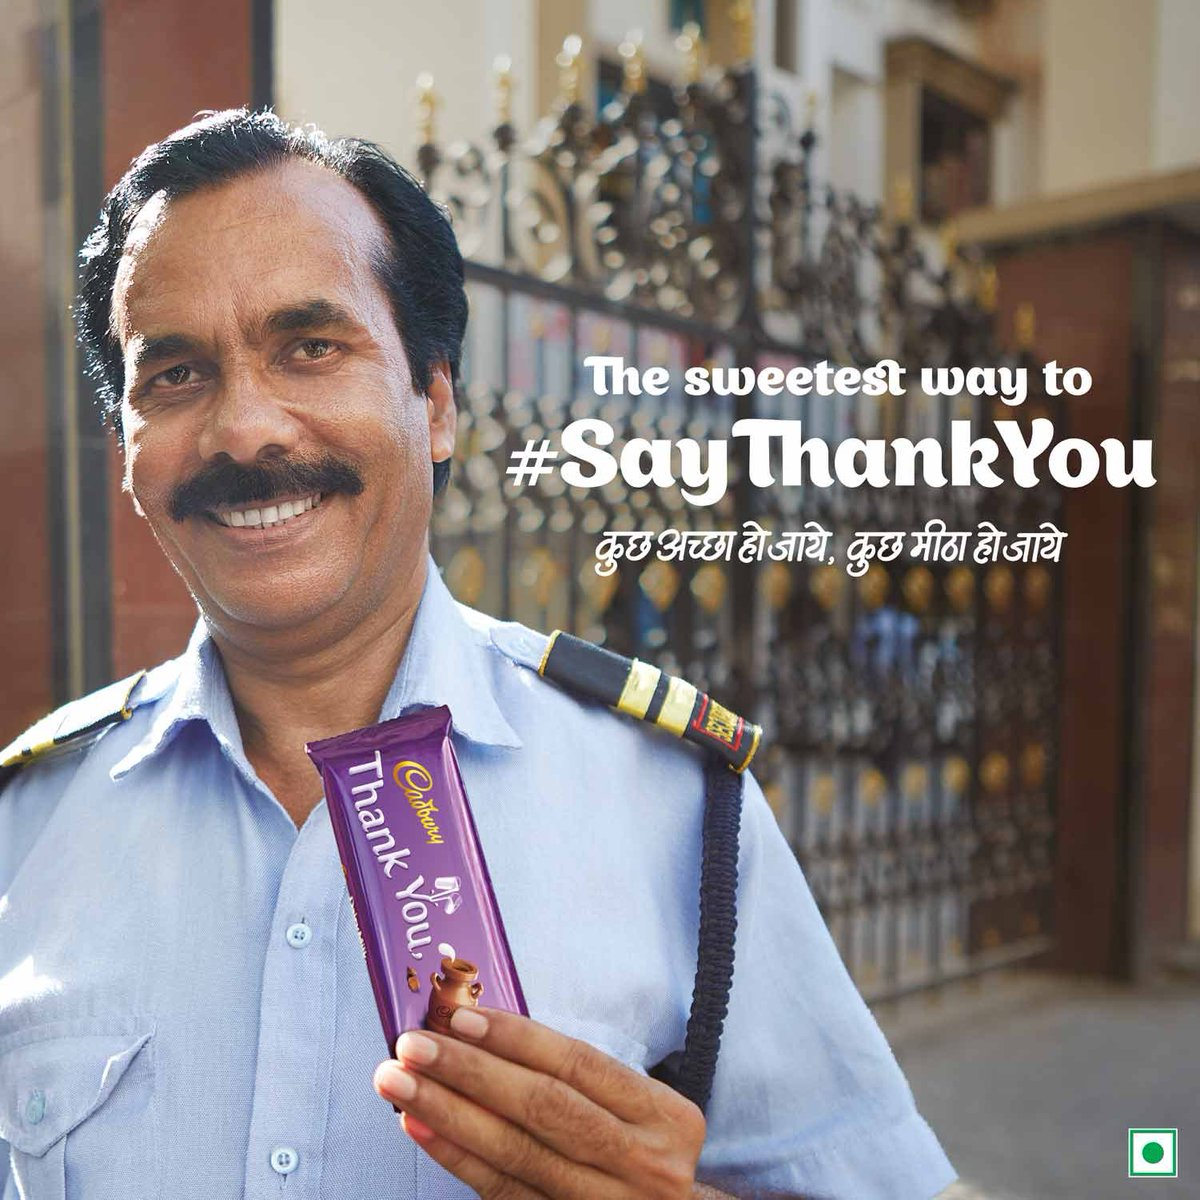 A little kindness goes a long way in helping those who make our lives easier. Every Cadbury Thank You bar helps provide health insurance to those who need it most. #SayThankYou #KuchAchhaHoJaayeKuchMeethaHoJaaye https://t.co/koXavW0Yp2